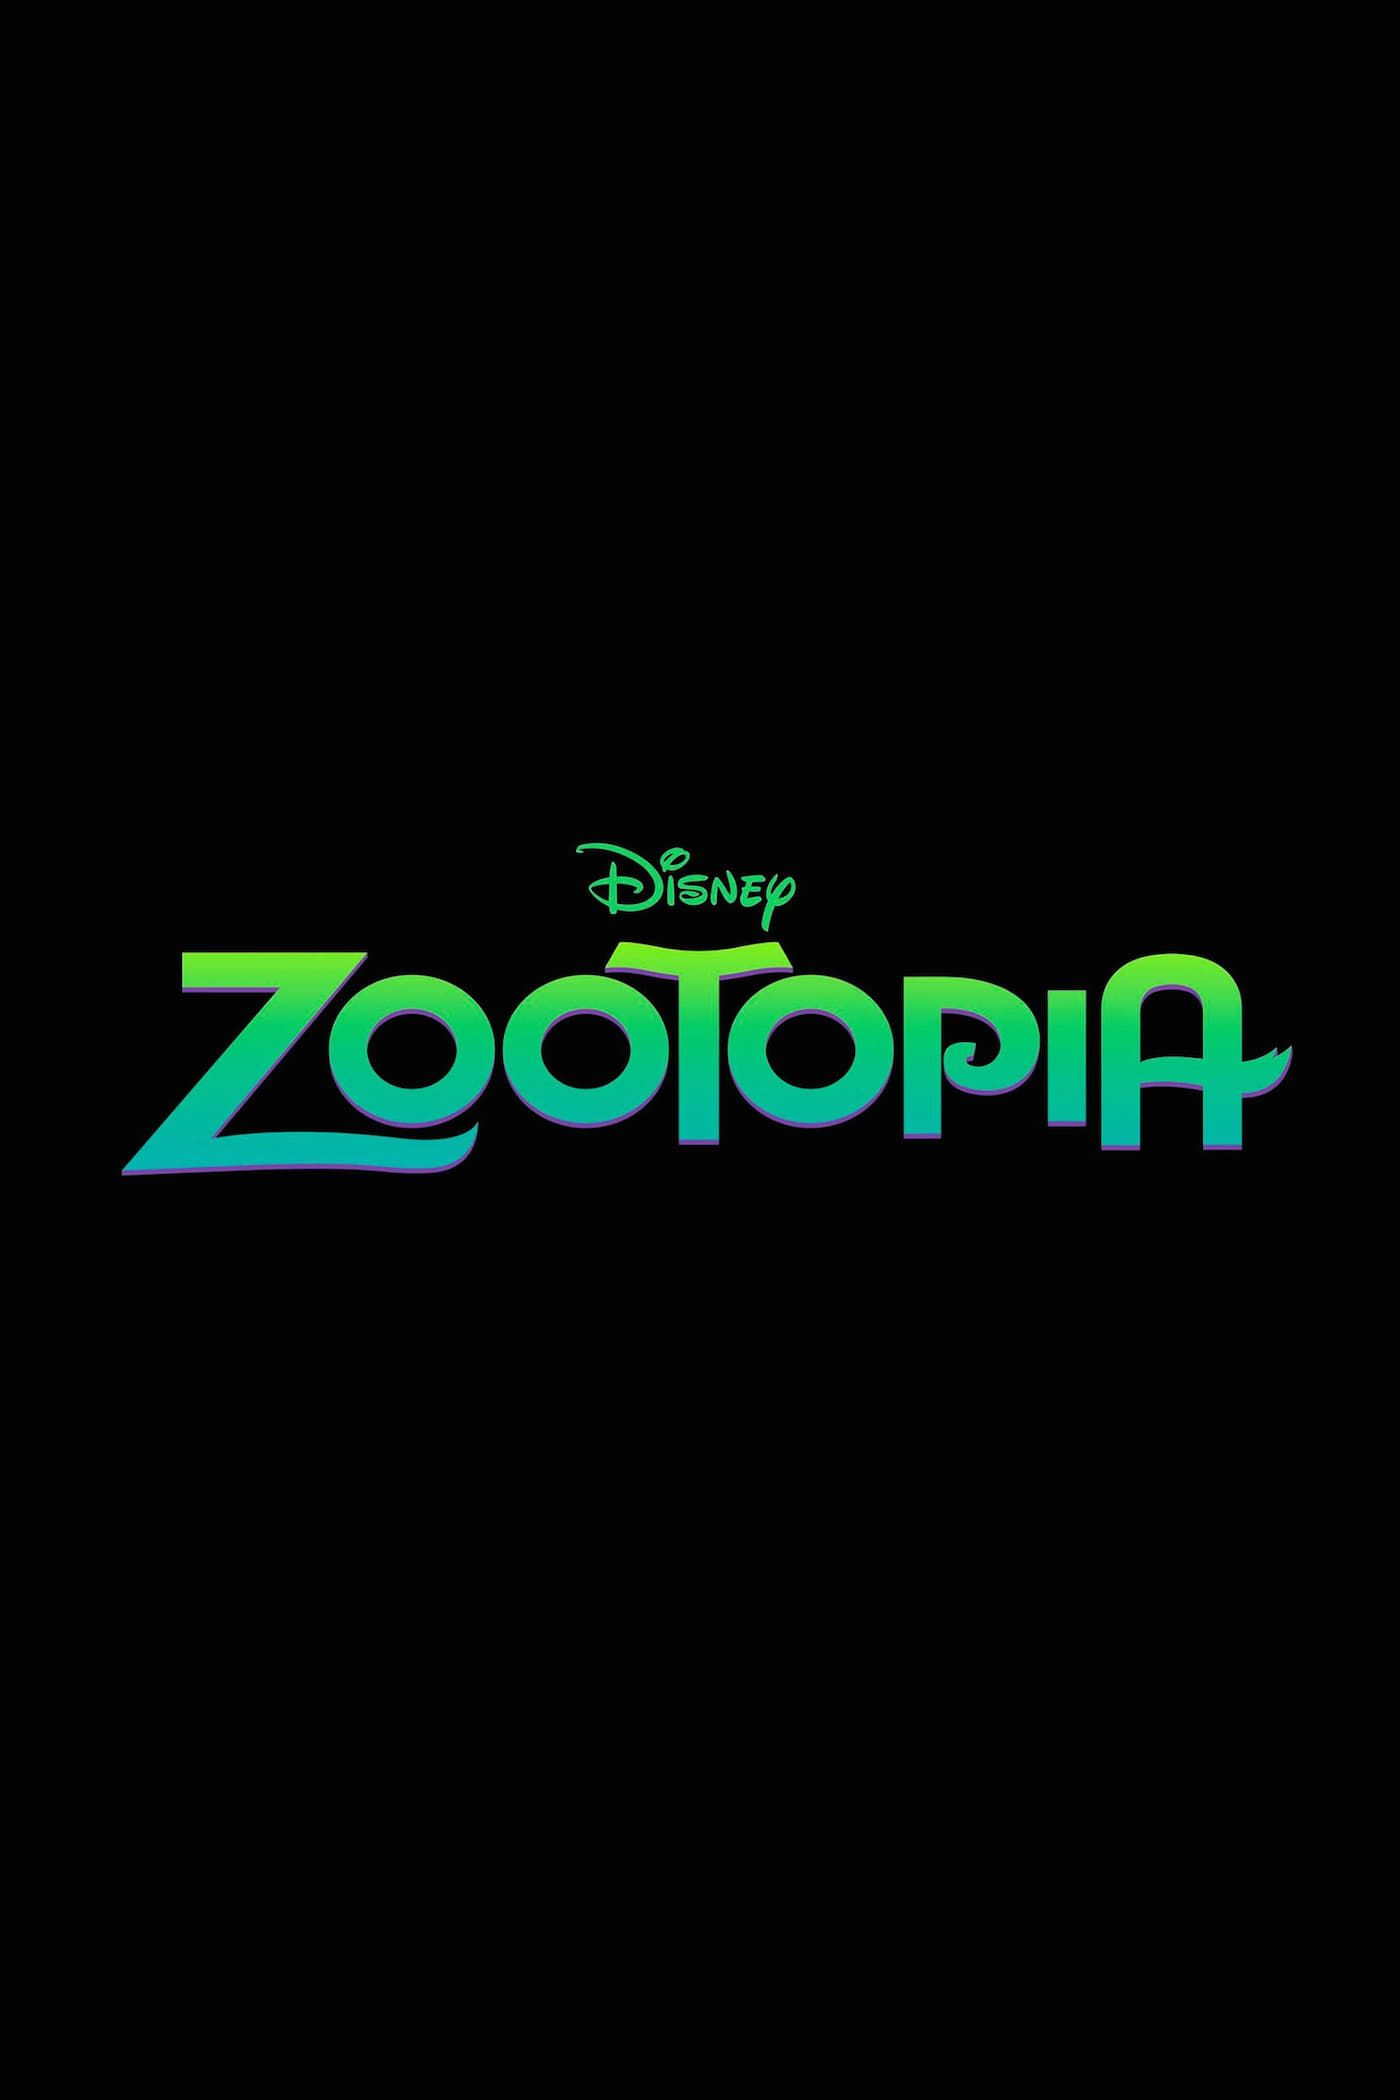 zootopia full movie download in english hd